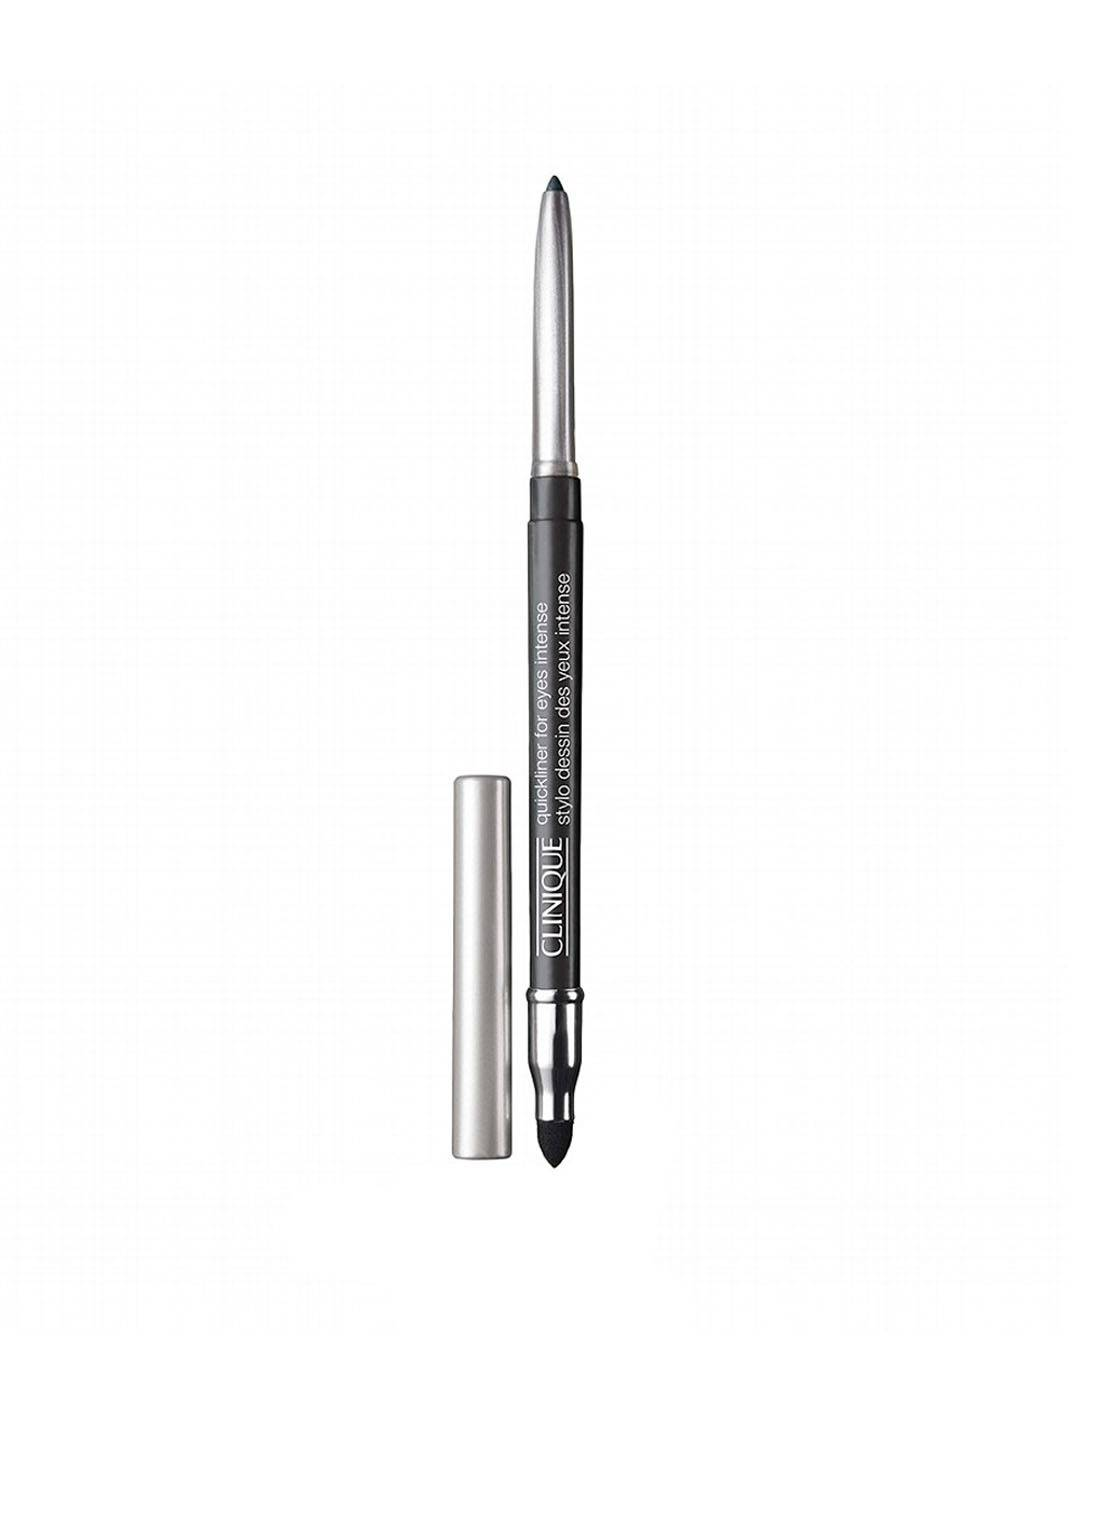 Clinique Quickliner For Eyes Intense - eye-liner - 05 Intense Charcoal